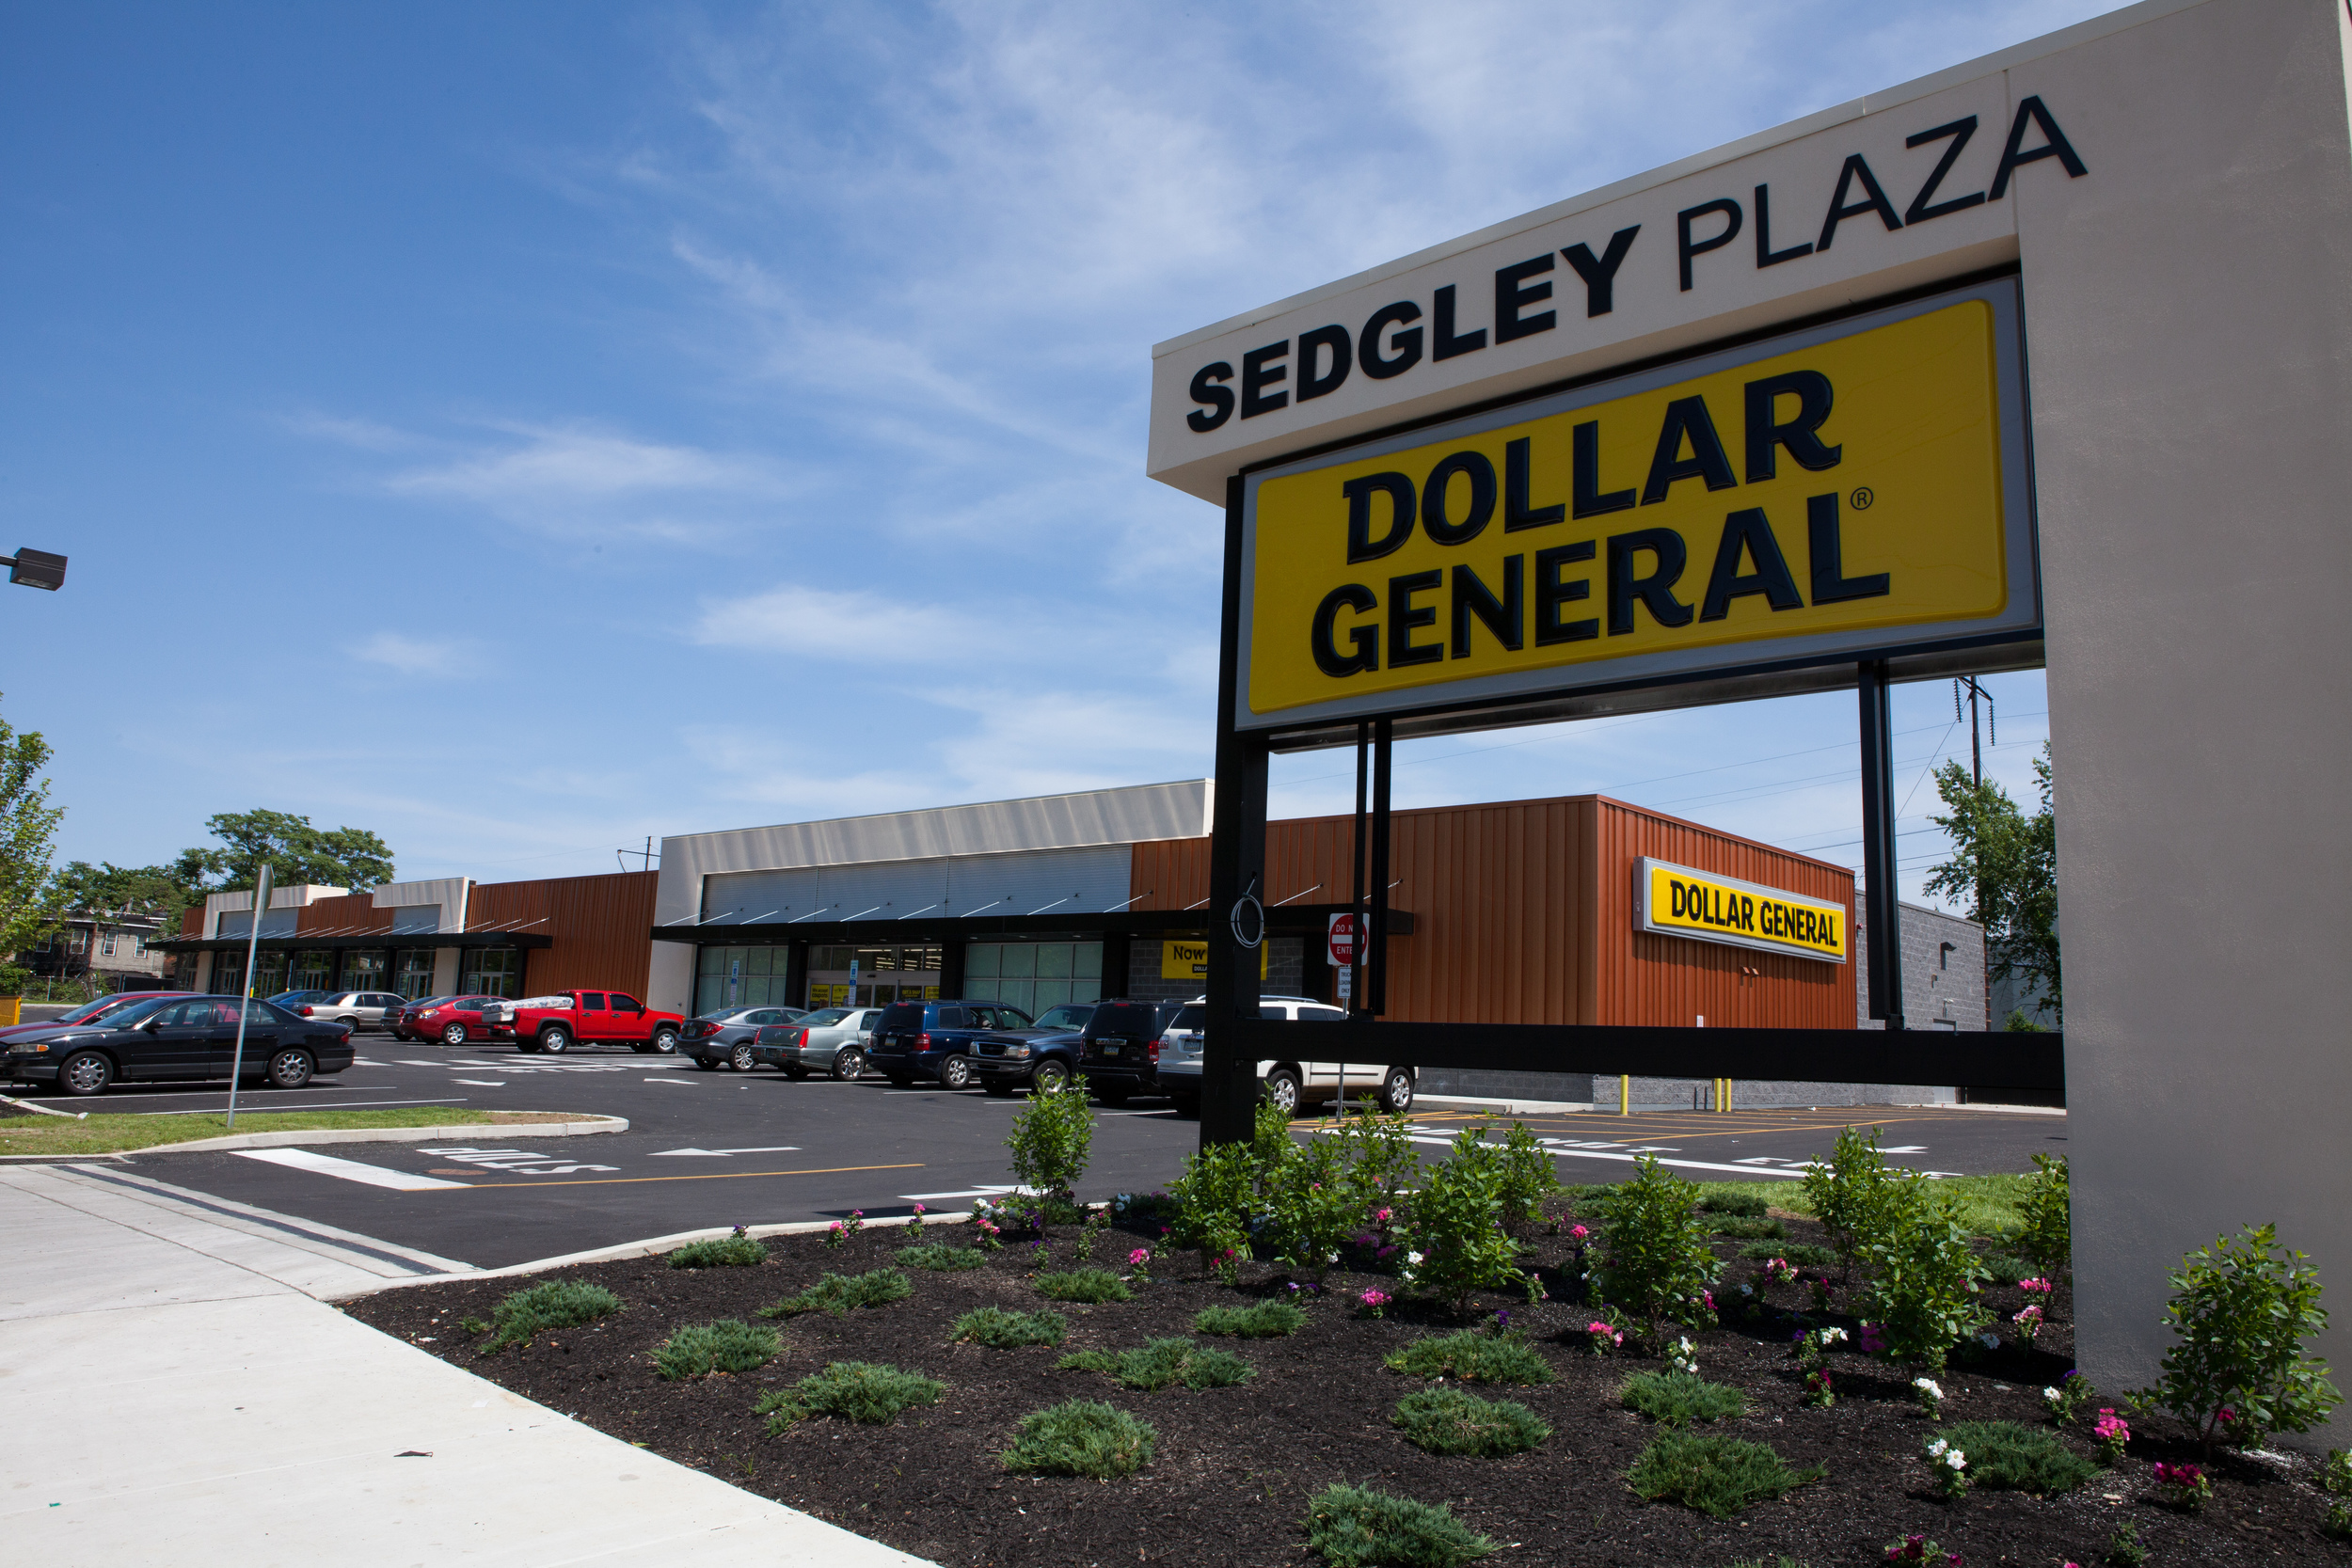 Sedgley_Plaza_final_5.17.12_0006.jpg